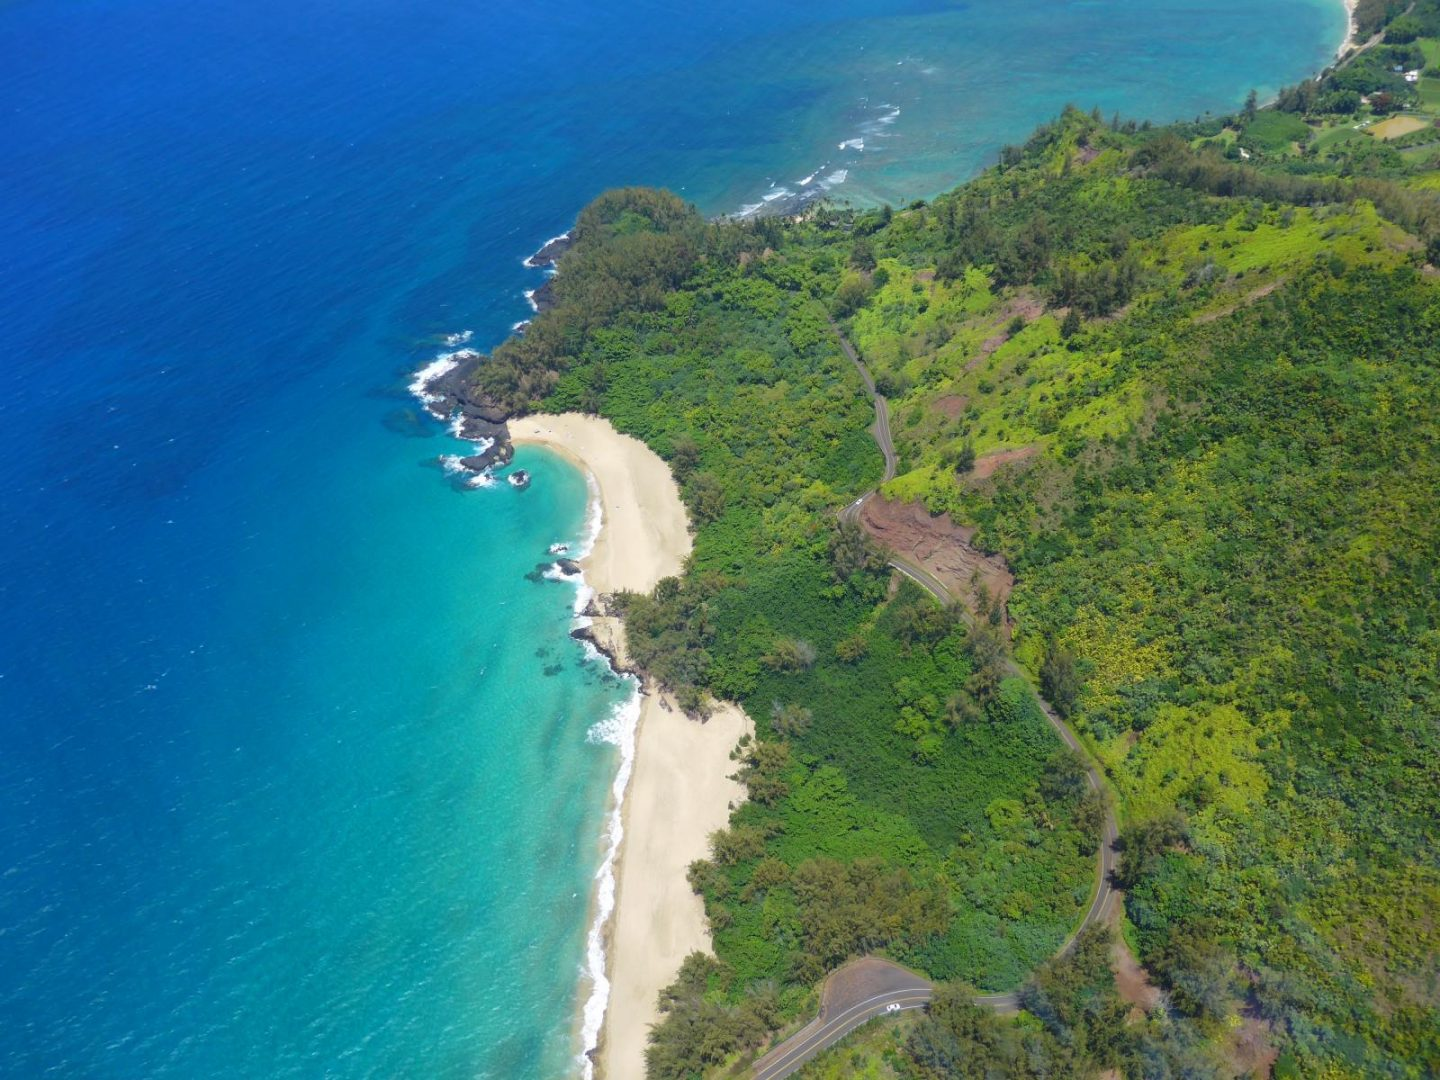 Travel to Hawaii - view from the helicopter ride